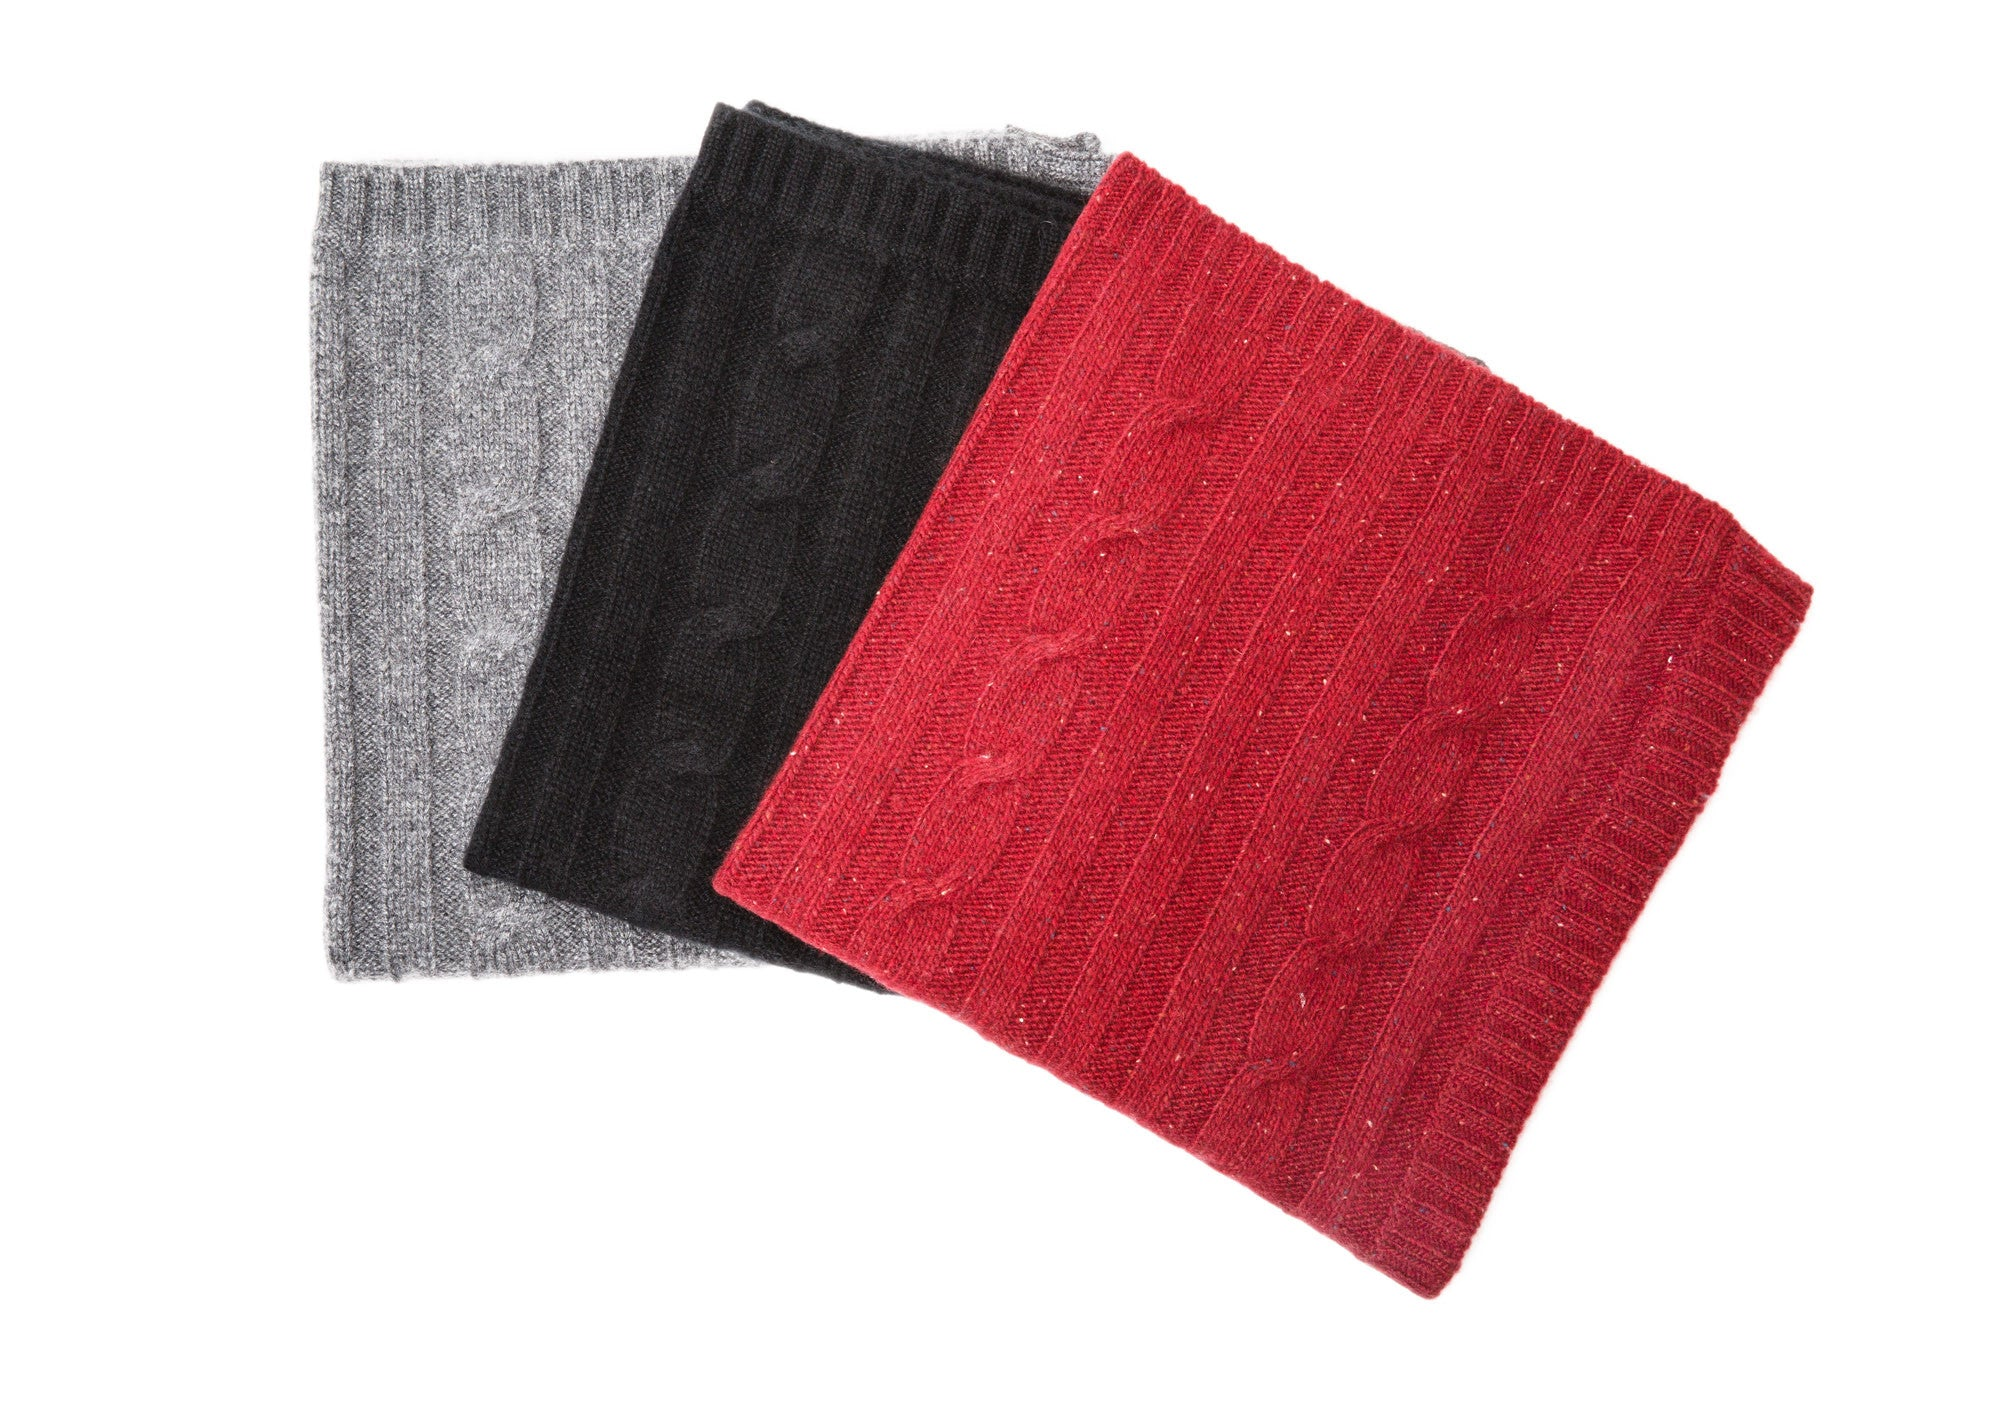 Cashmere Blanket - Gray, Black, or Burgundy - Canine Styles - Dog Blanket - 3 Color Options